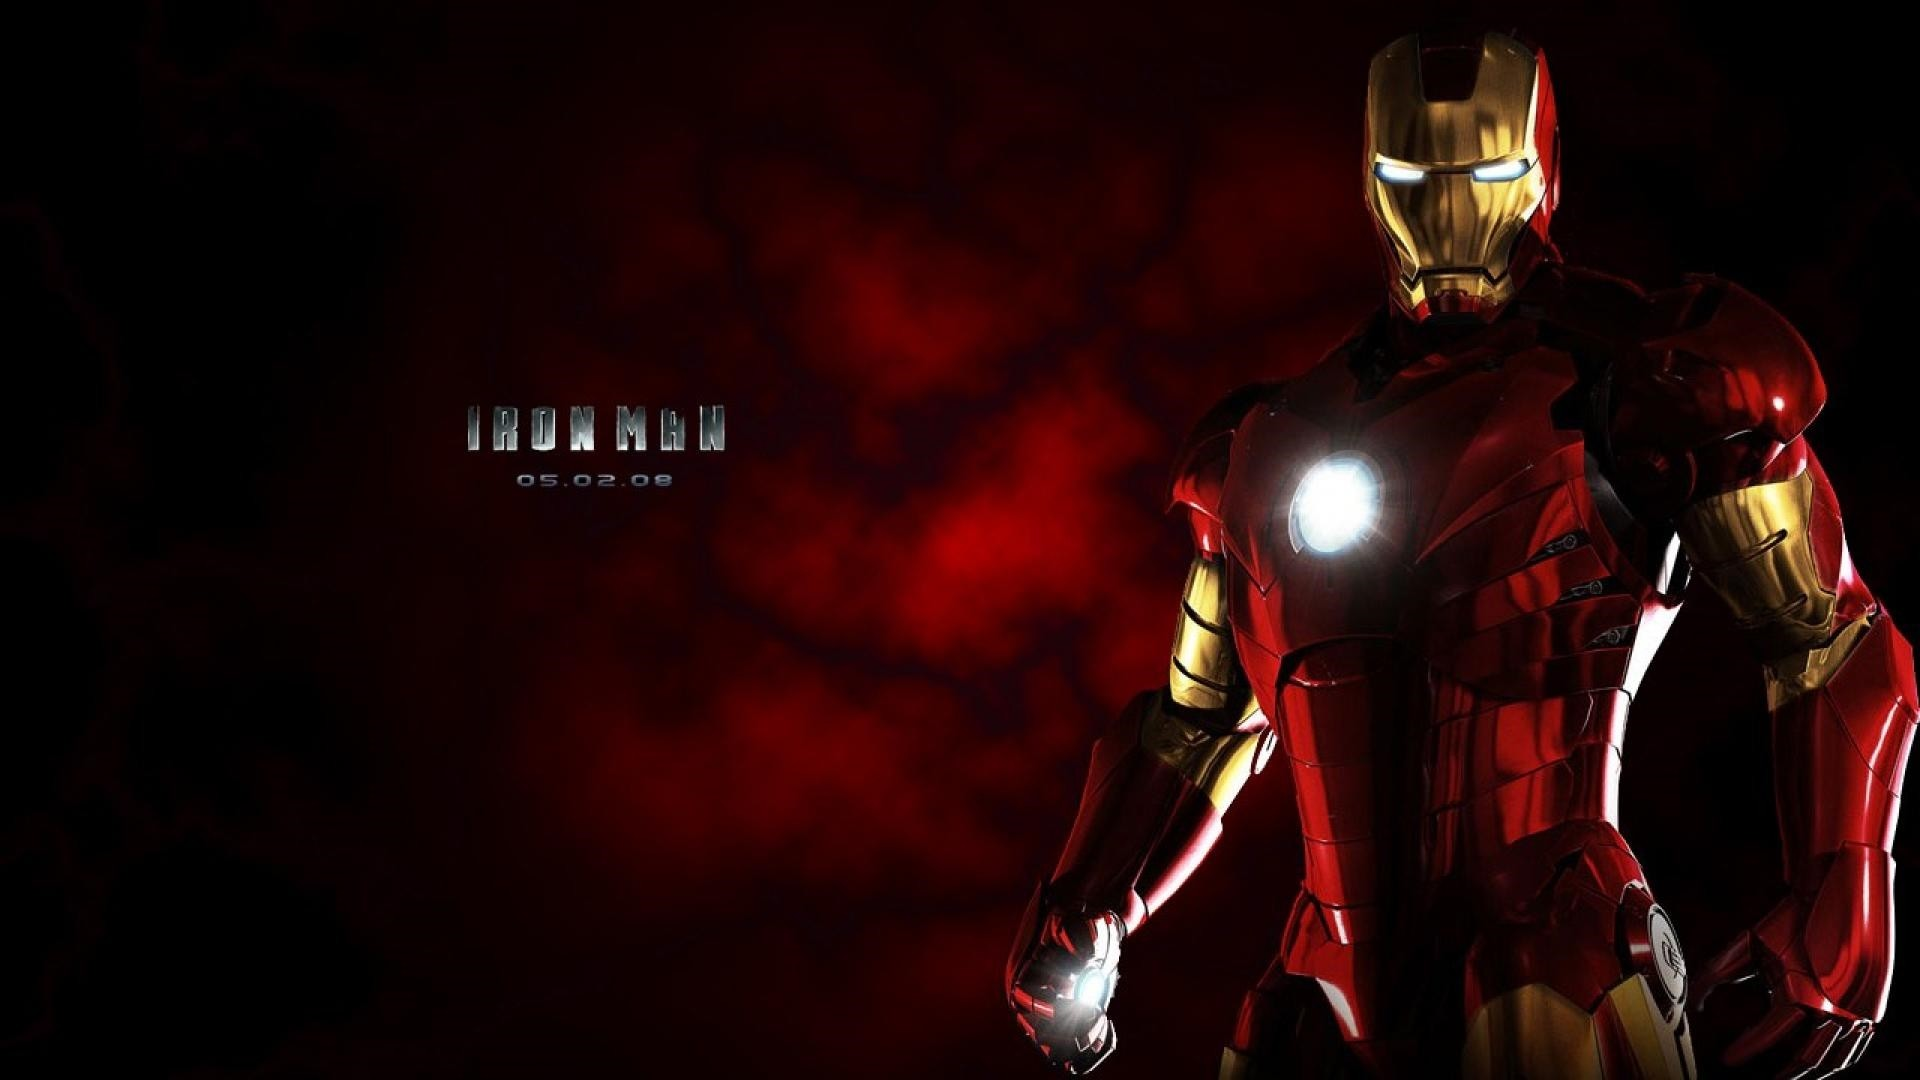 … Iron Man Wallpapers | Page 3